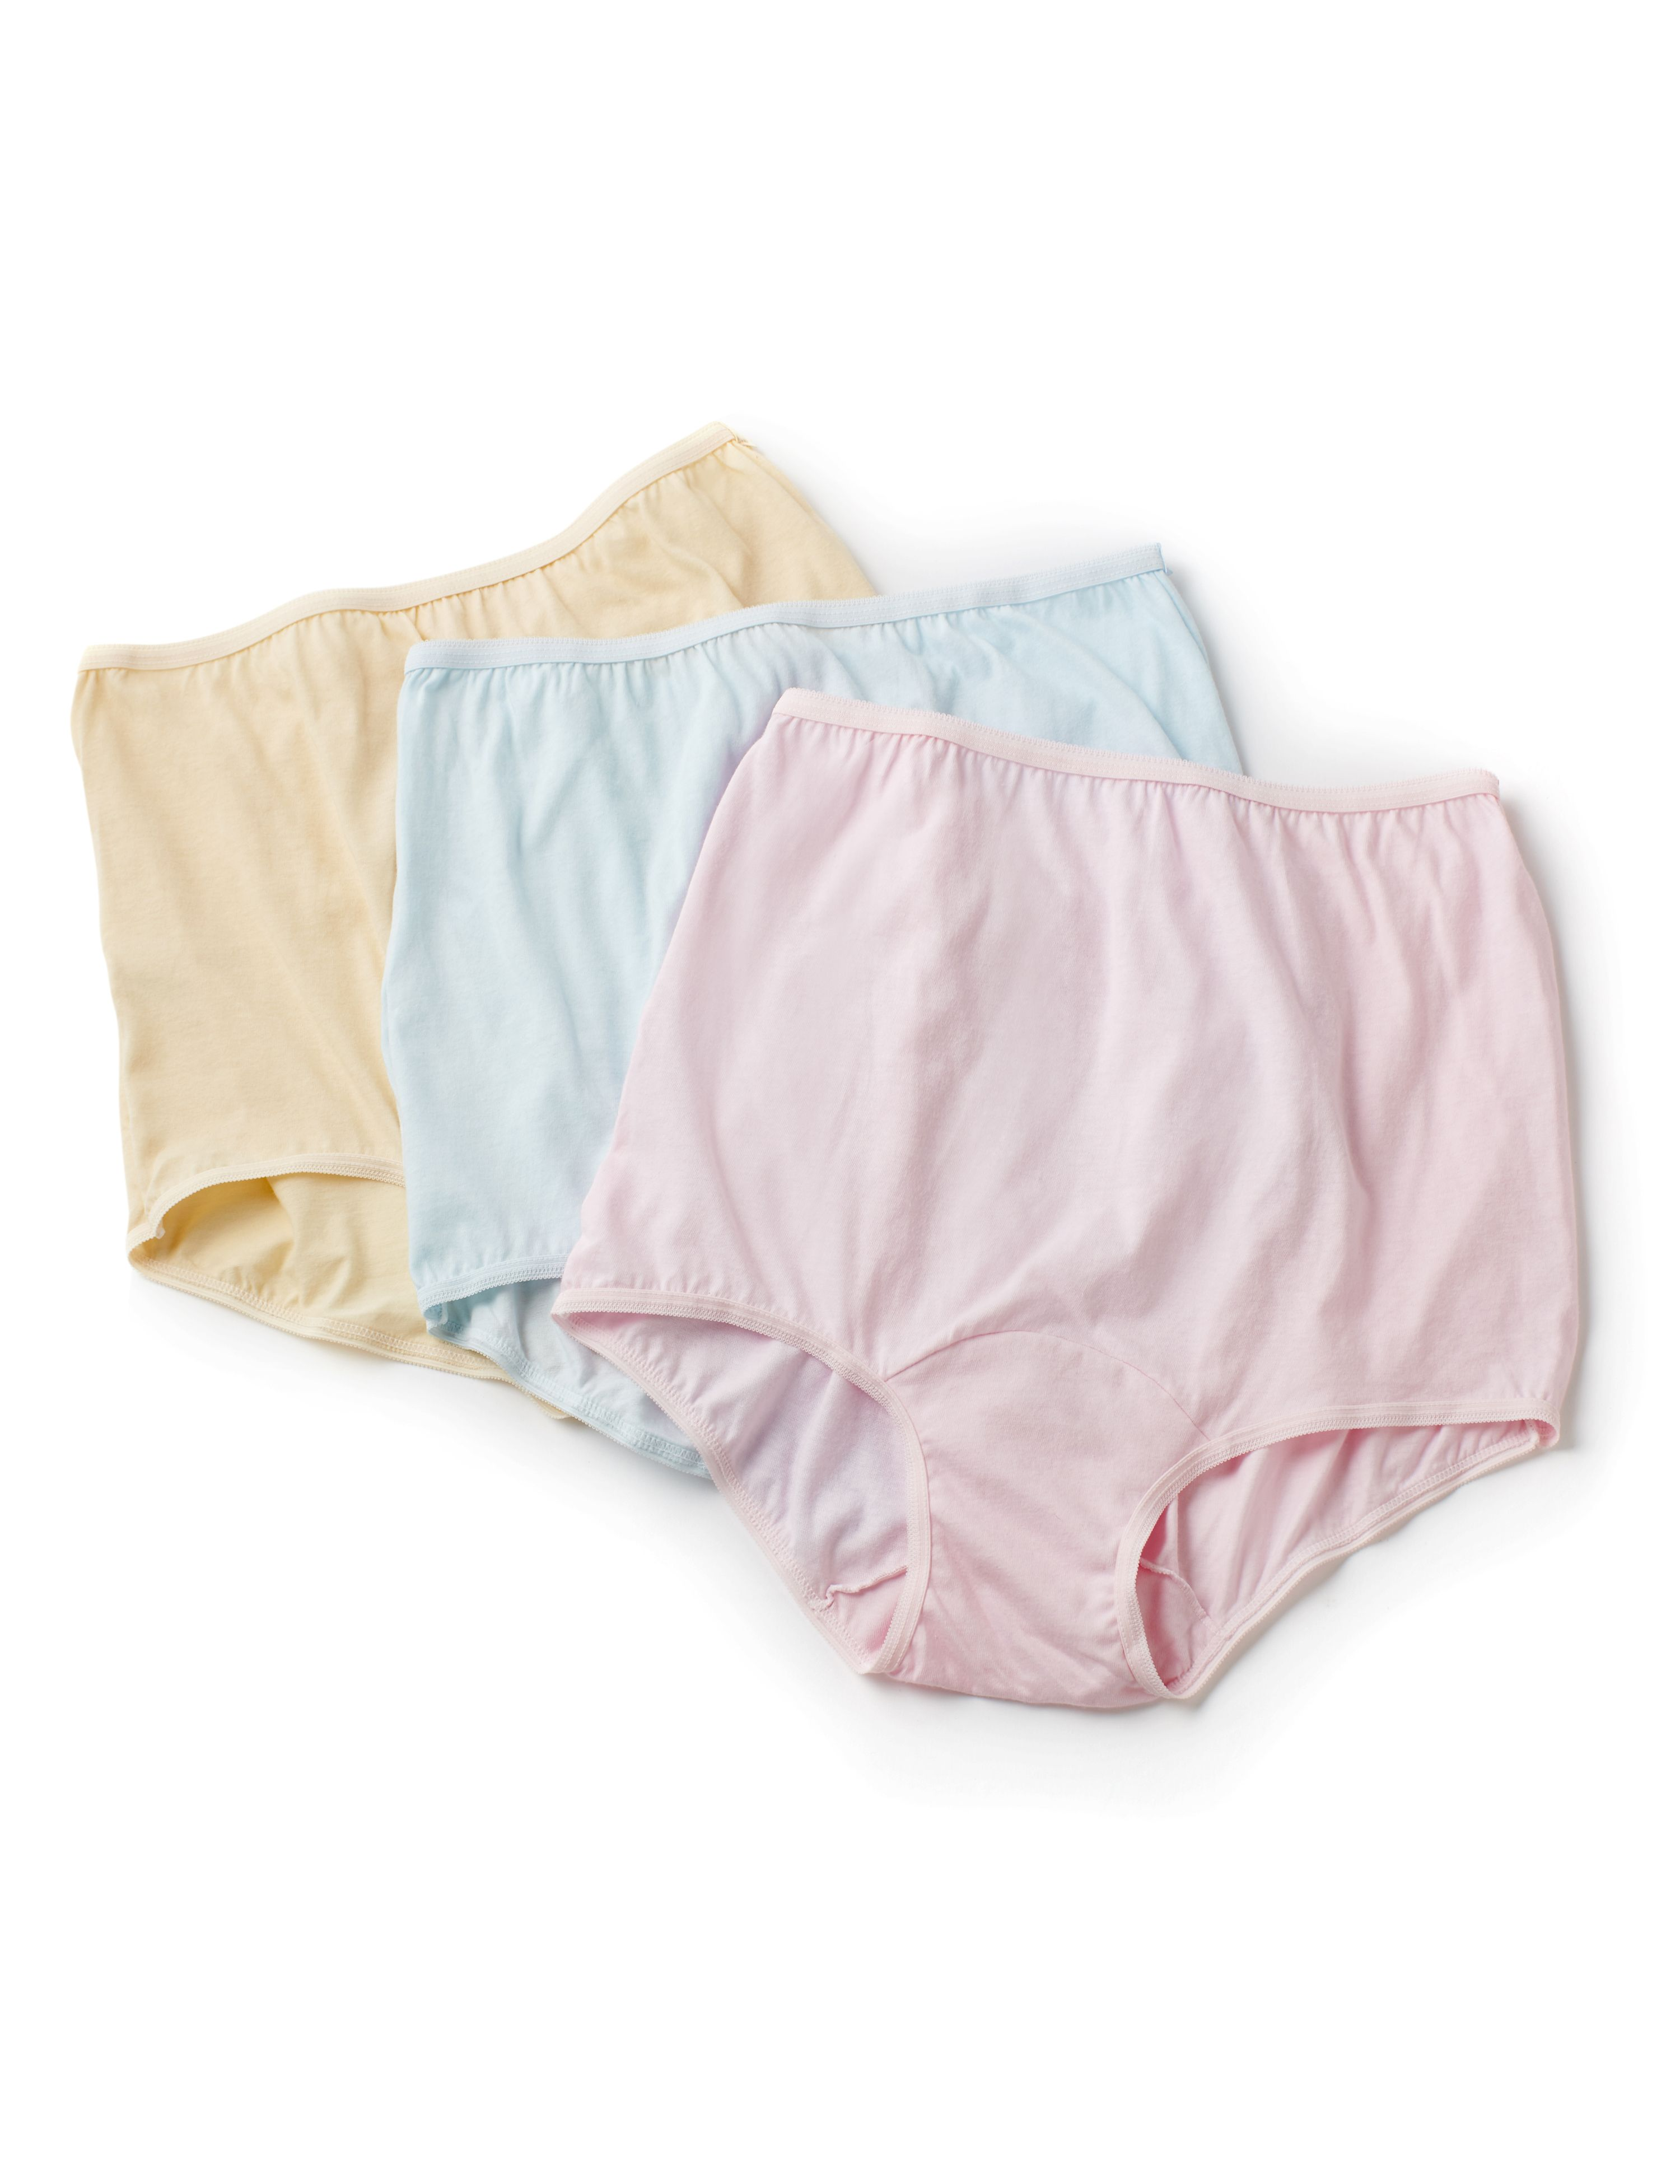 3-Pack Cotton Panties 3-Pack Cotton Panties MP-200103838